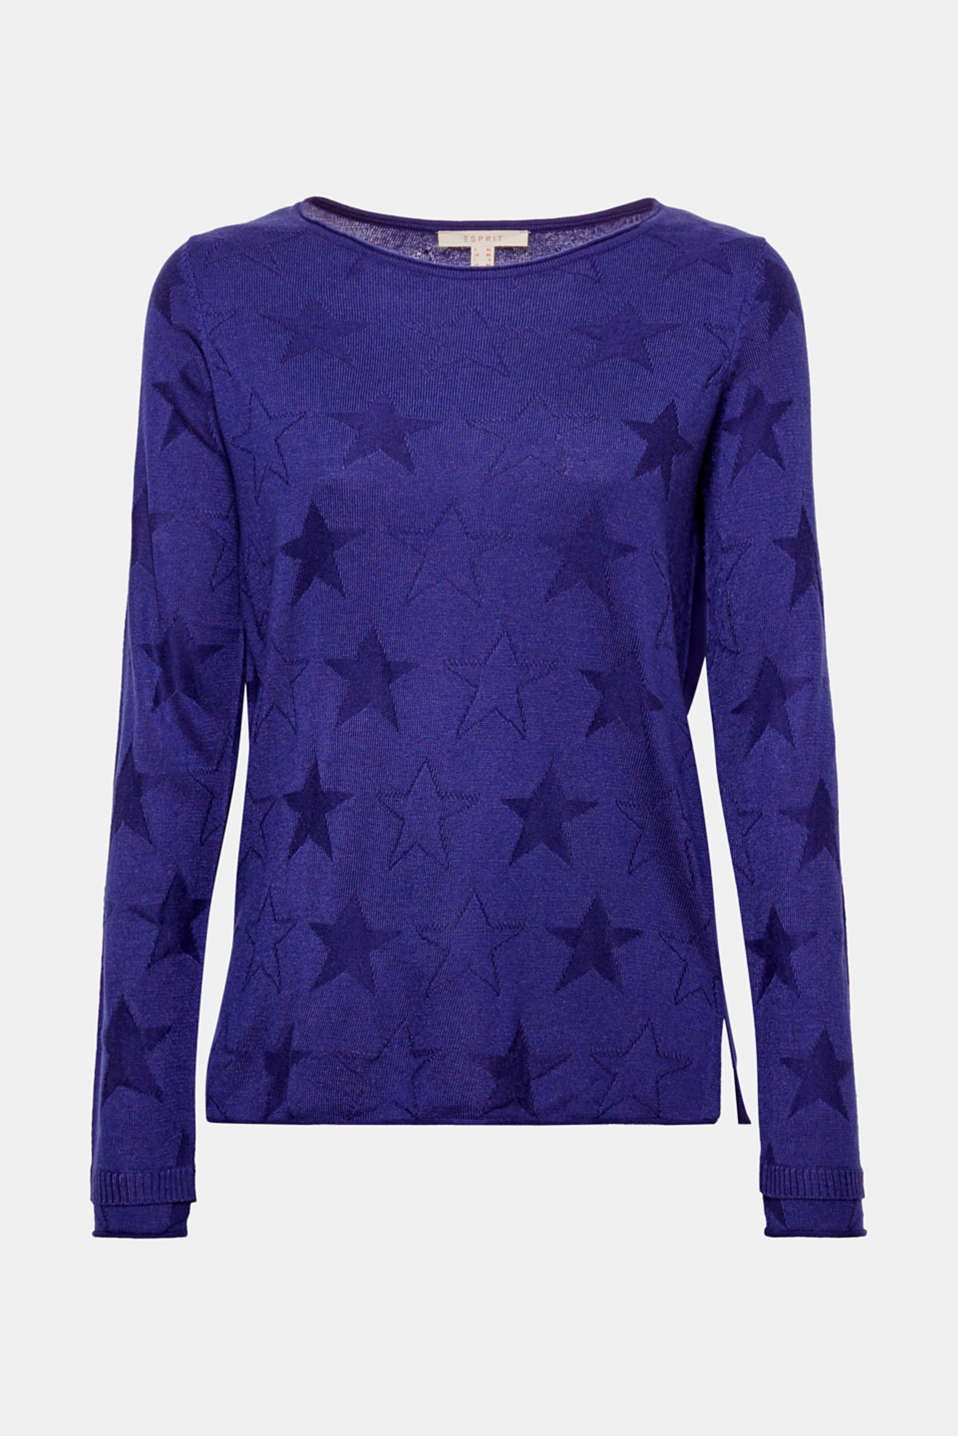 Superstar: this jumper is a real eye-catcher thanks to the interwoven tonal star intarsia!